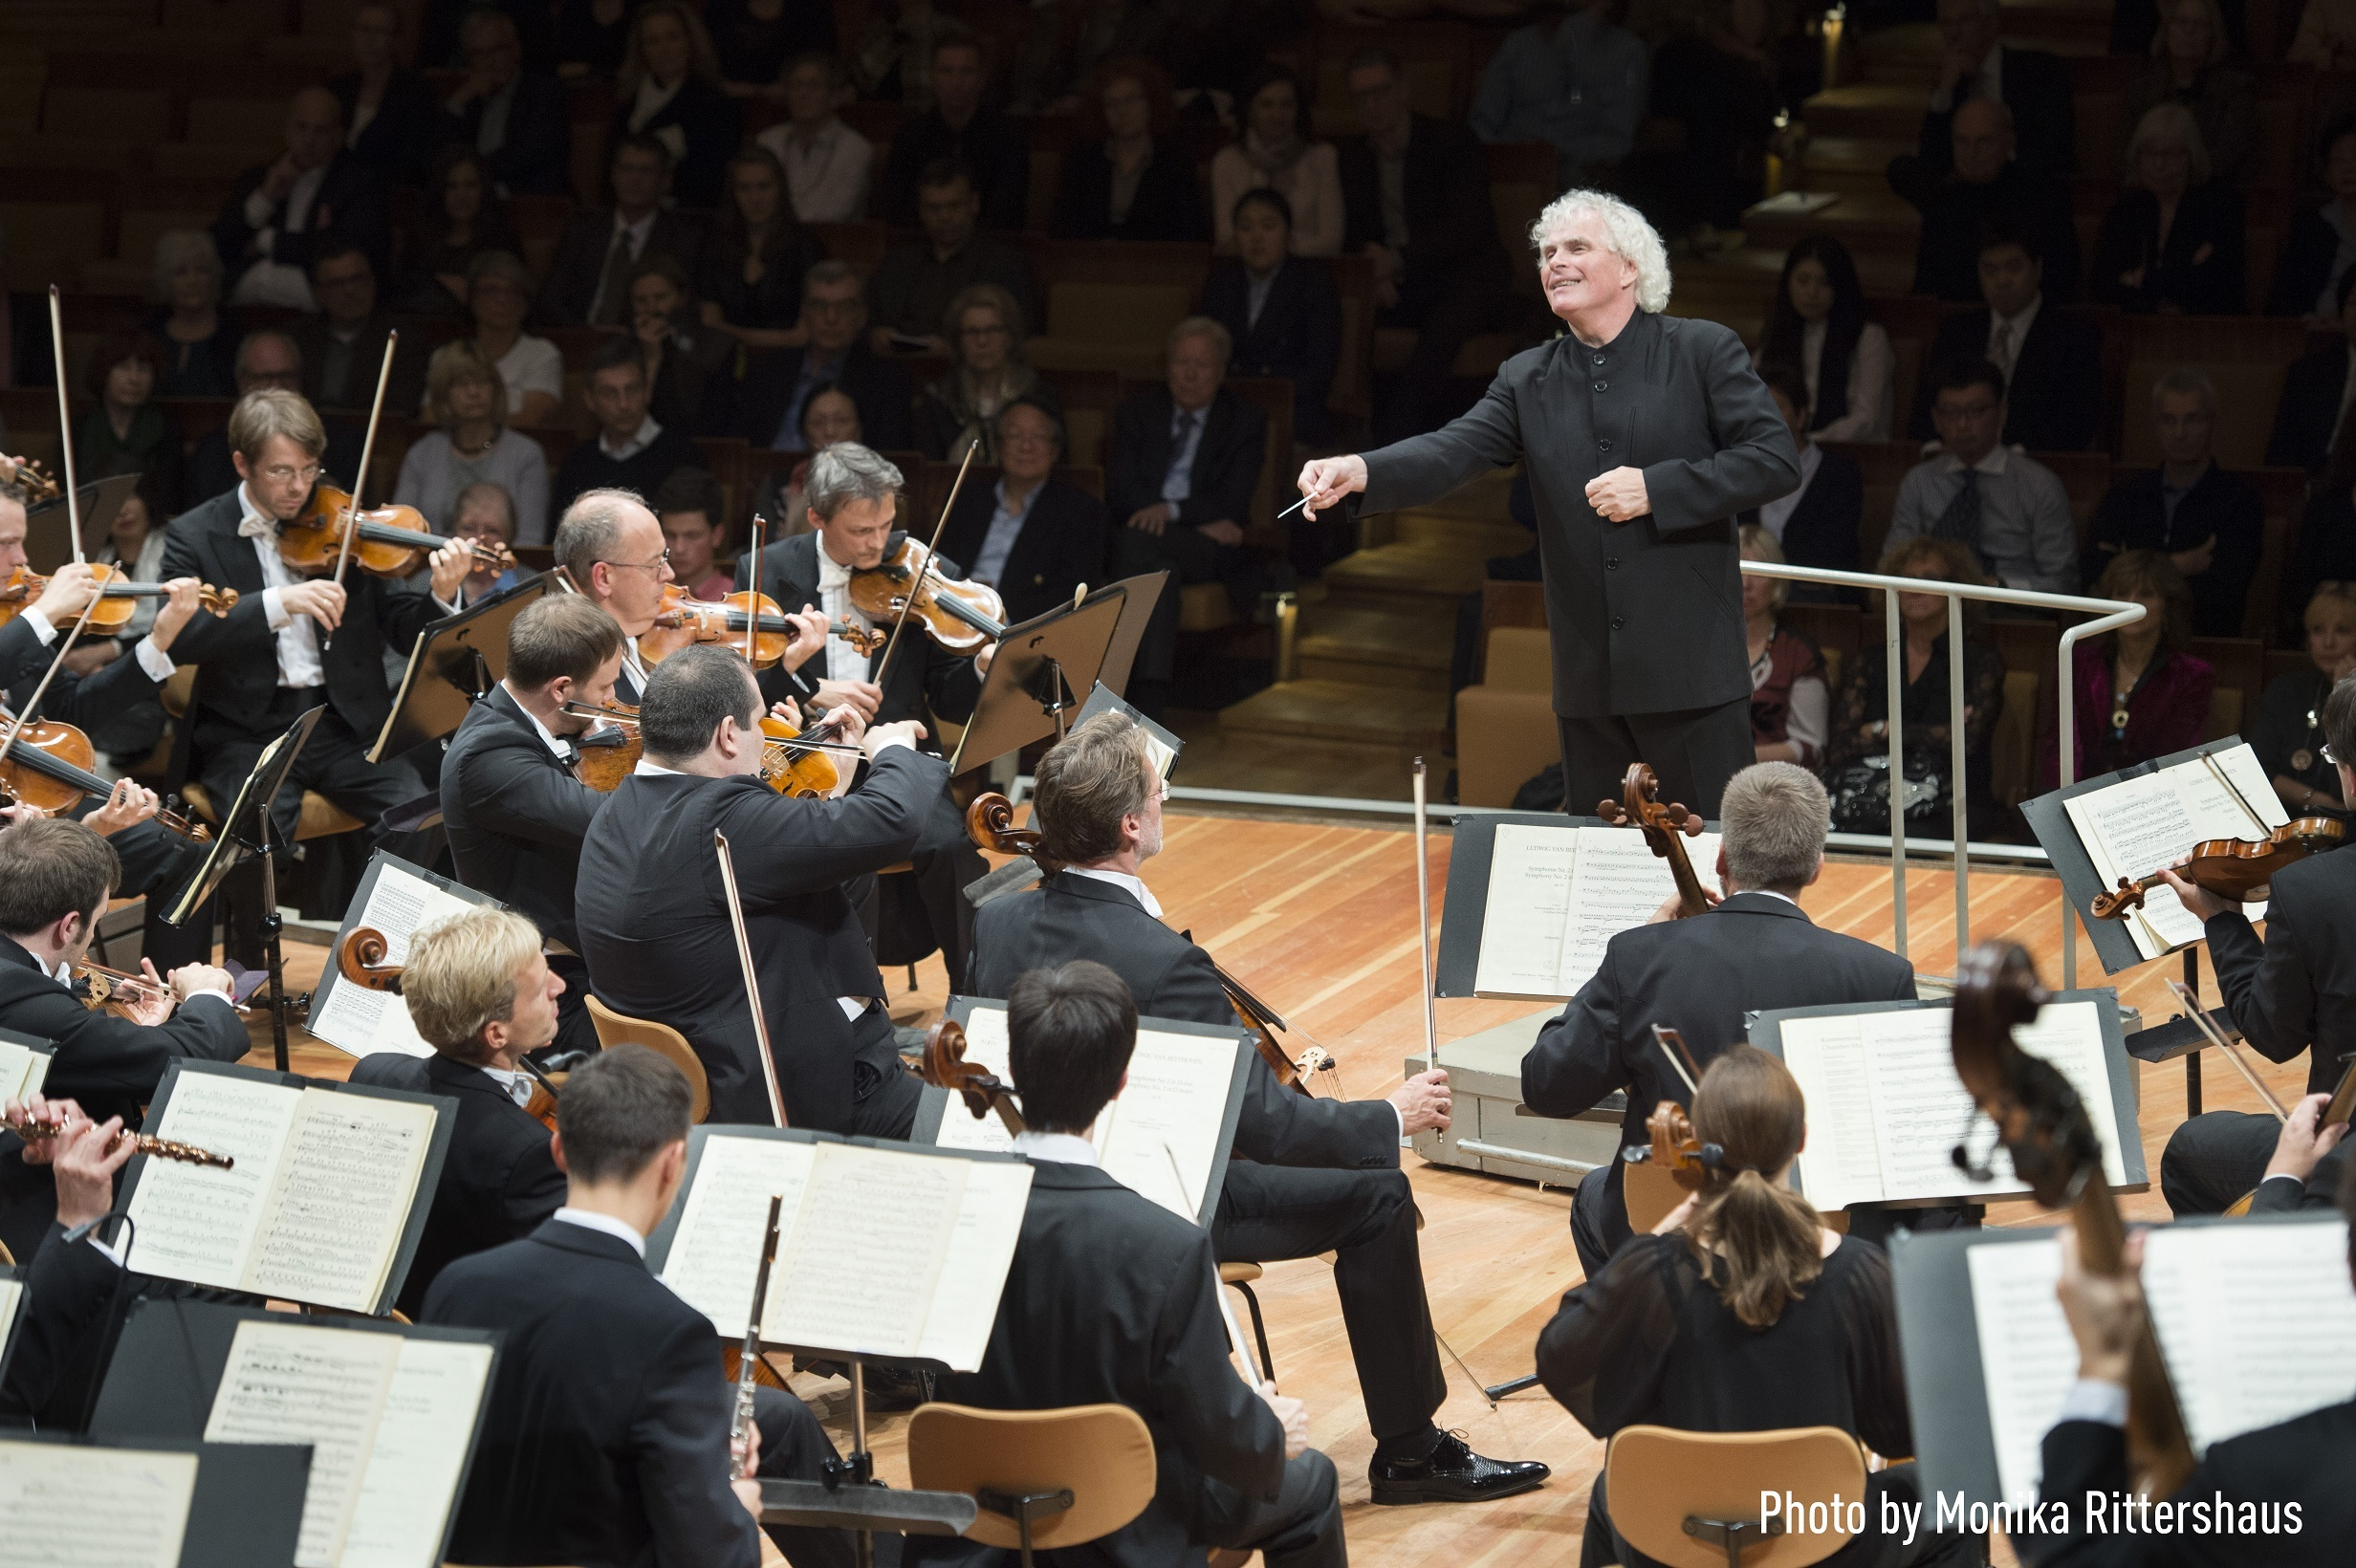 Berliner Philharmoniker and Panasonic to Collaborate on Technology ...